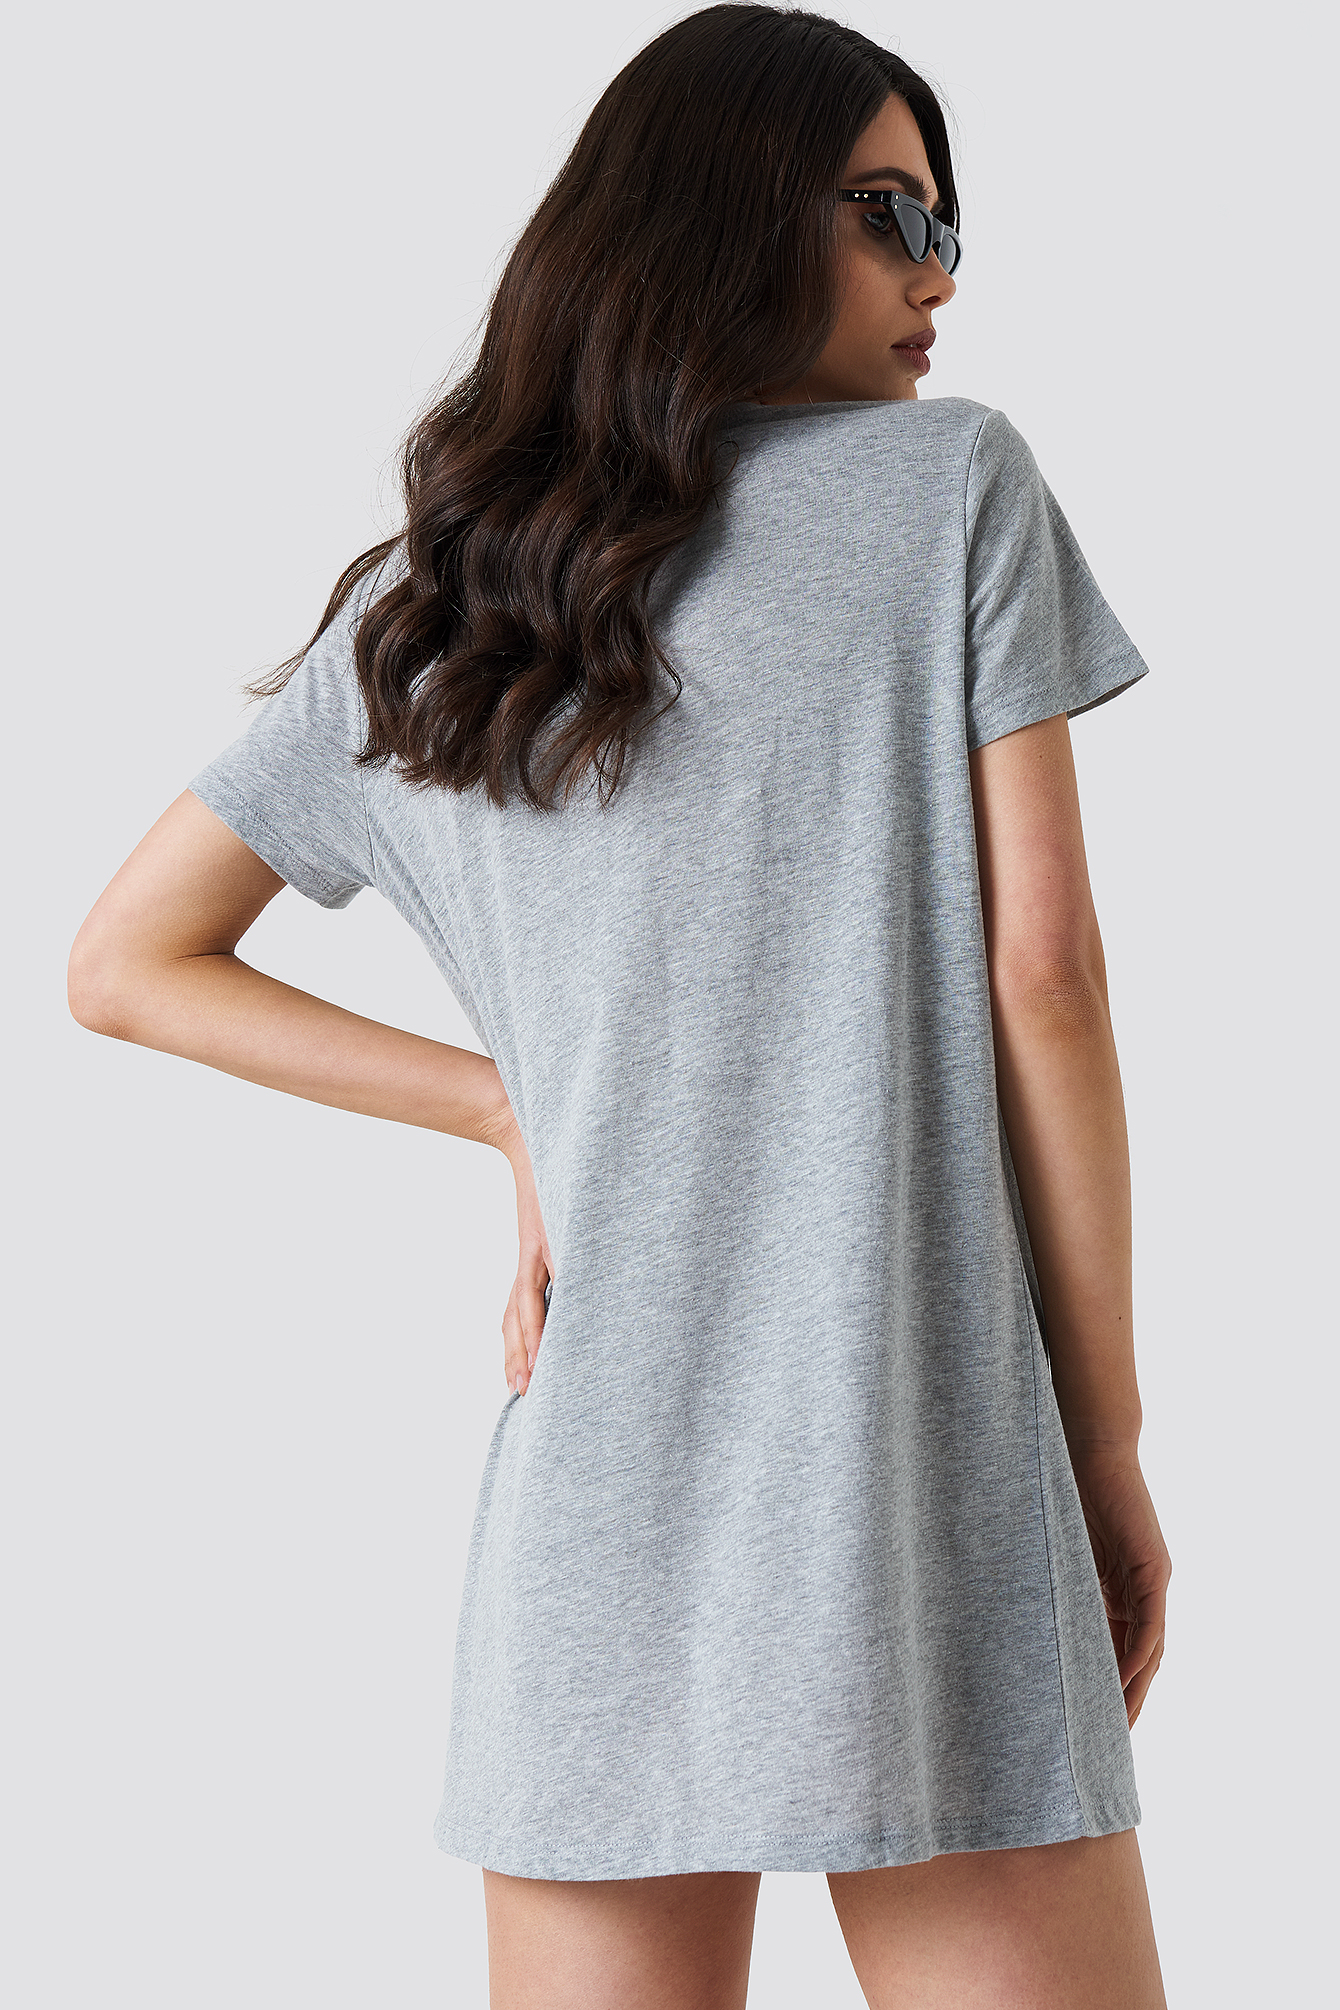 Double X T-shirt Dress NA-KD.COM